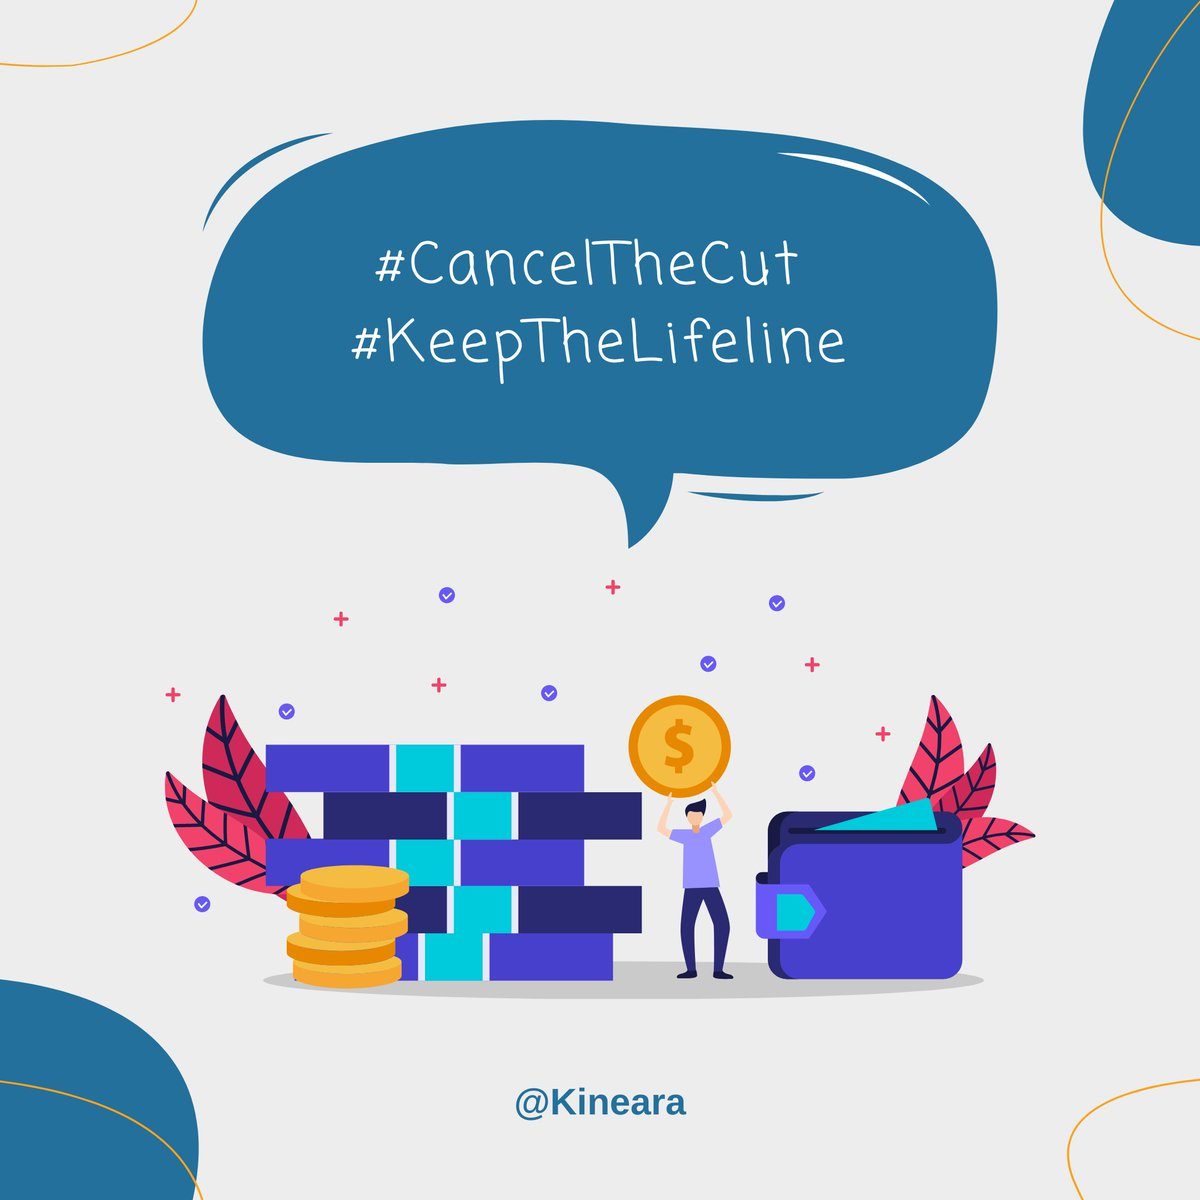 test Twitter Media - The govt are cutting the £20 universal credit uplift while raising national insurance which could push 1/4 families in England into poverty and debt.   We must #CancelTheCut and #KeepTheLifeline this October: https://t.co/8QjybzfhXi https://t.co/hVEEiqKd3a